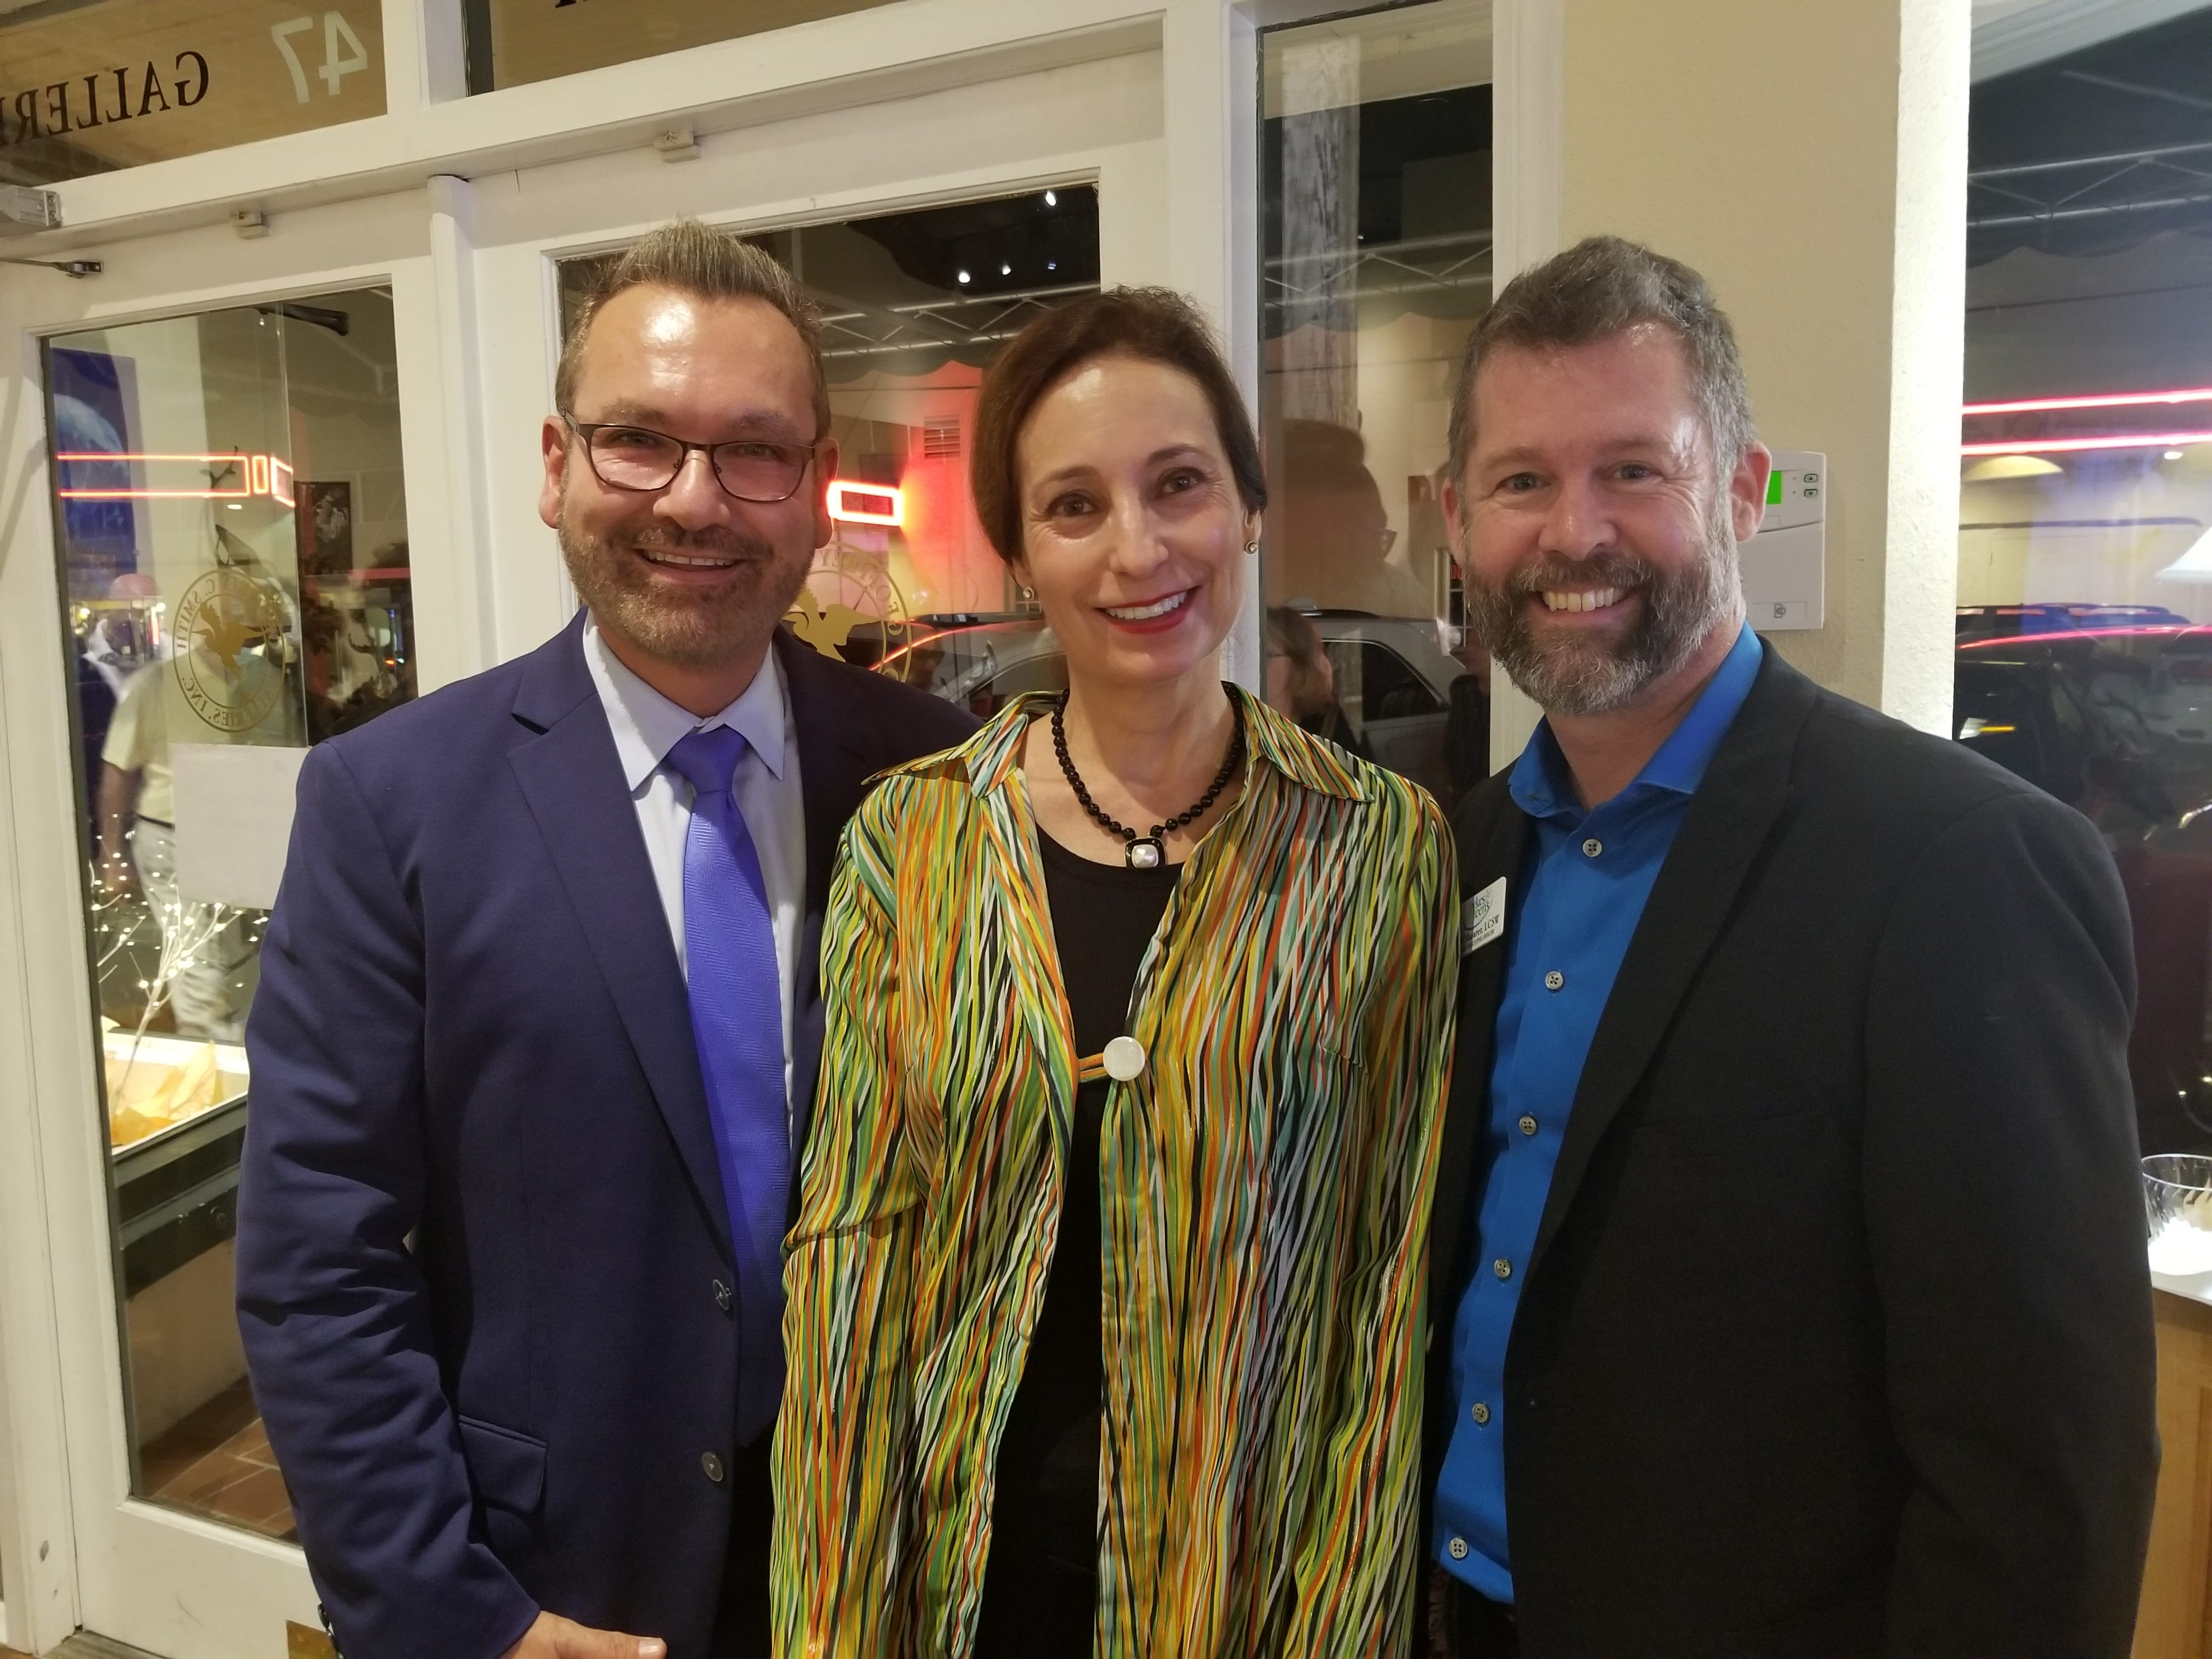 """Rudy Molinet, left, Rebecca Phillips and Jeff Shearer at Geoffrey Smith Gallery before a performance of the smash Vegas hit """"The Bronx Wanderers"""" at Stuart's Lyric Theatre. Tykes & Teens partnered with theLyric Theatre and Geoffrey Smith Gallery to host a rocking evening of fun for Tykes & Teens supporters."""